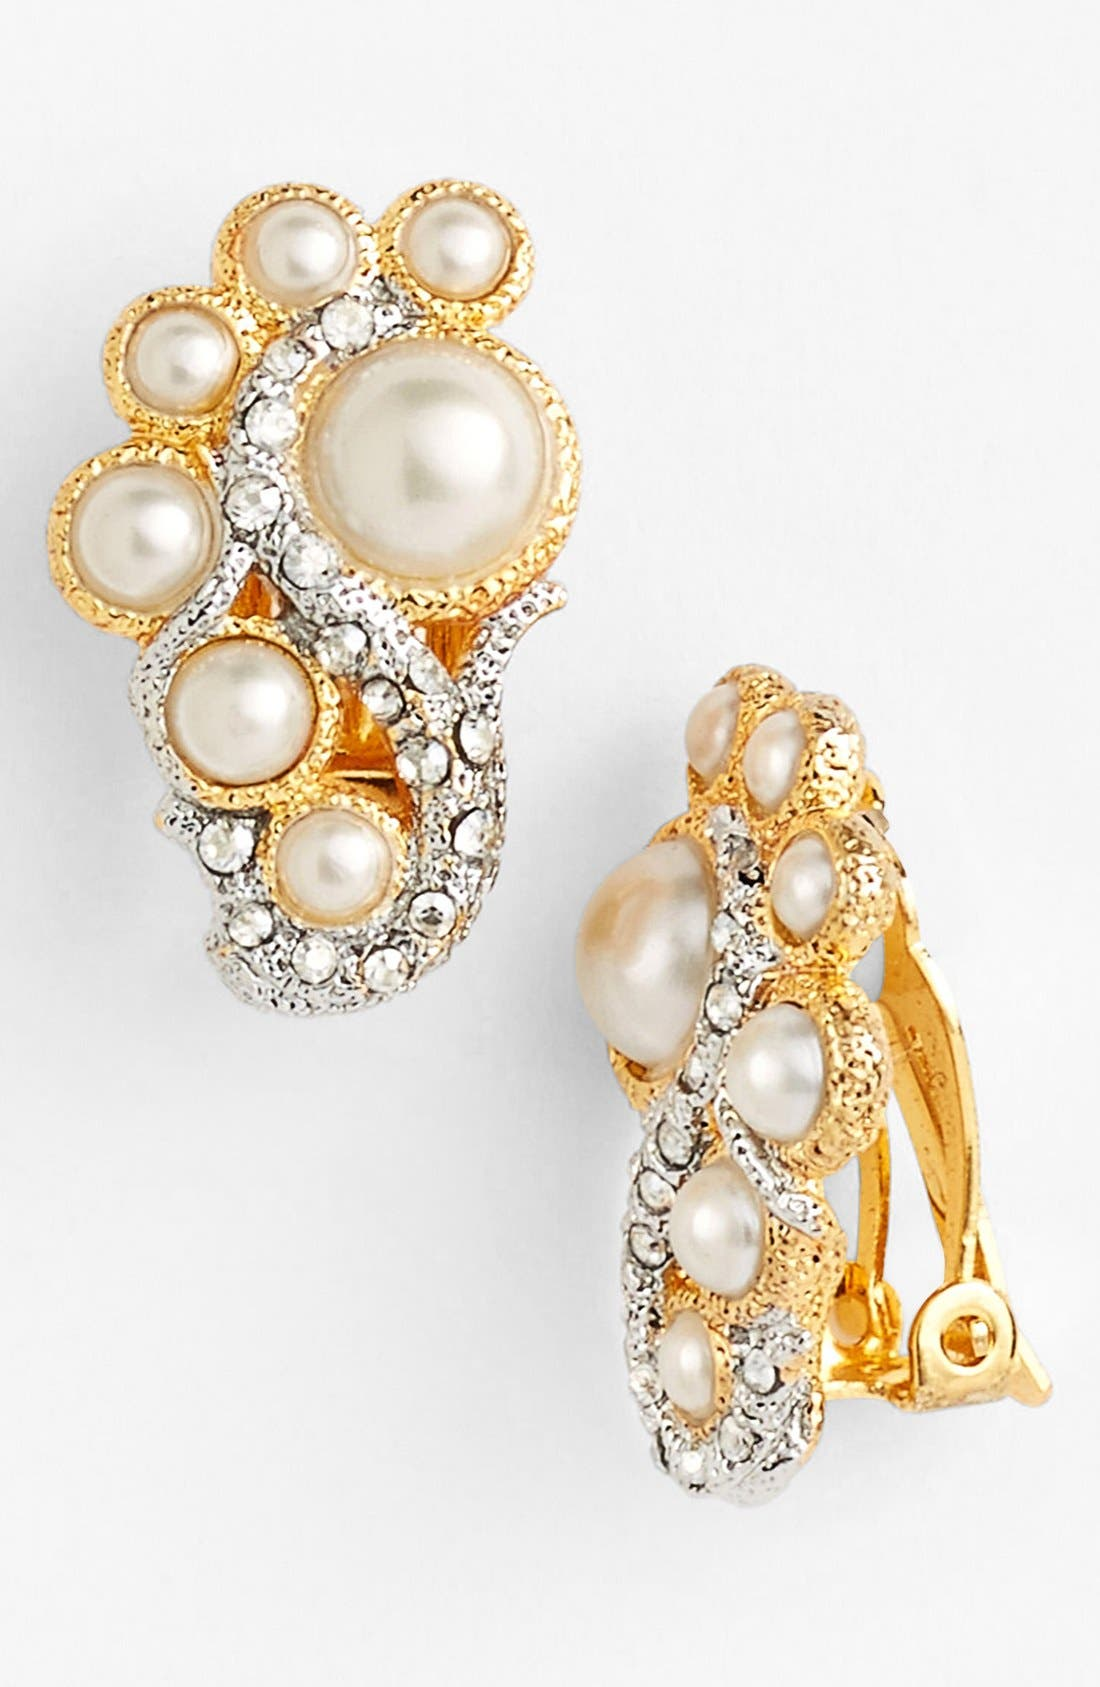 Main Image - Alexis Bittar 'Elements - Maldivian' Clip Earrings